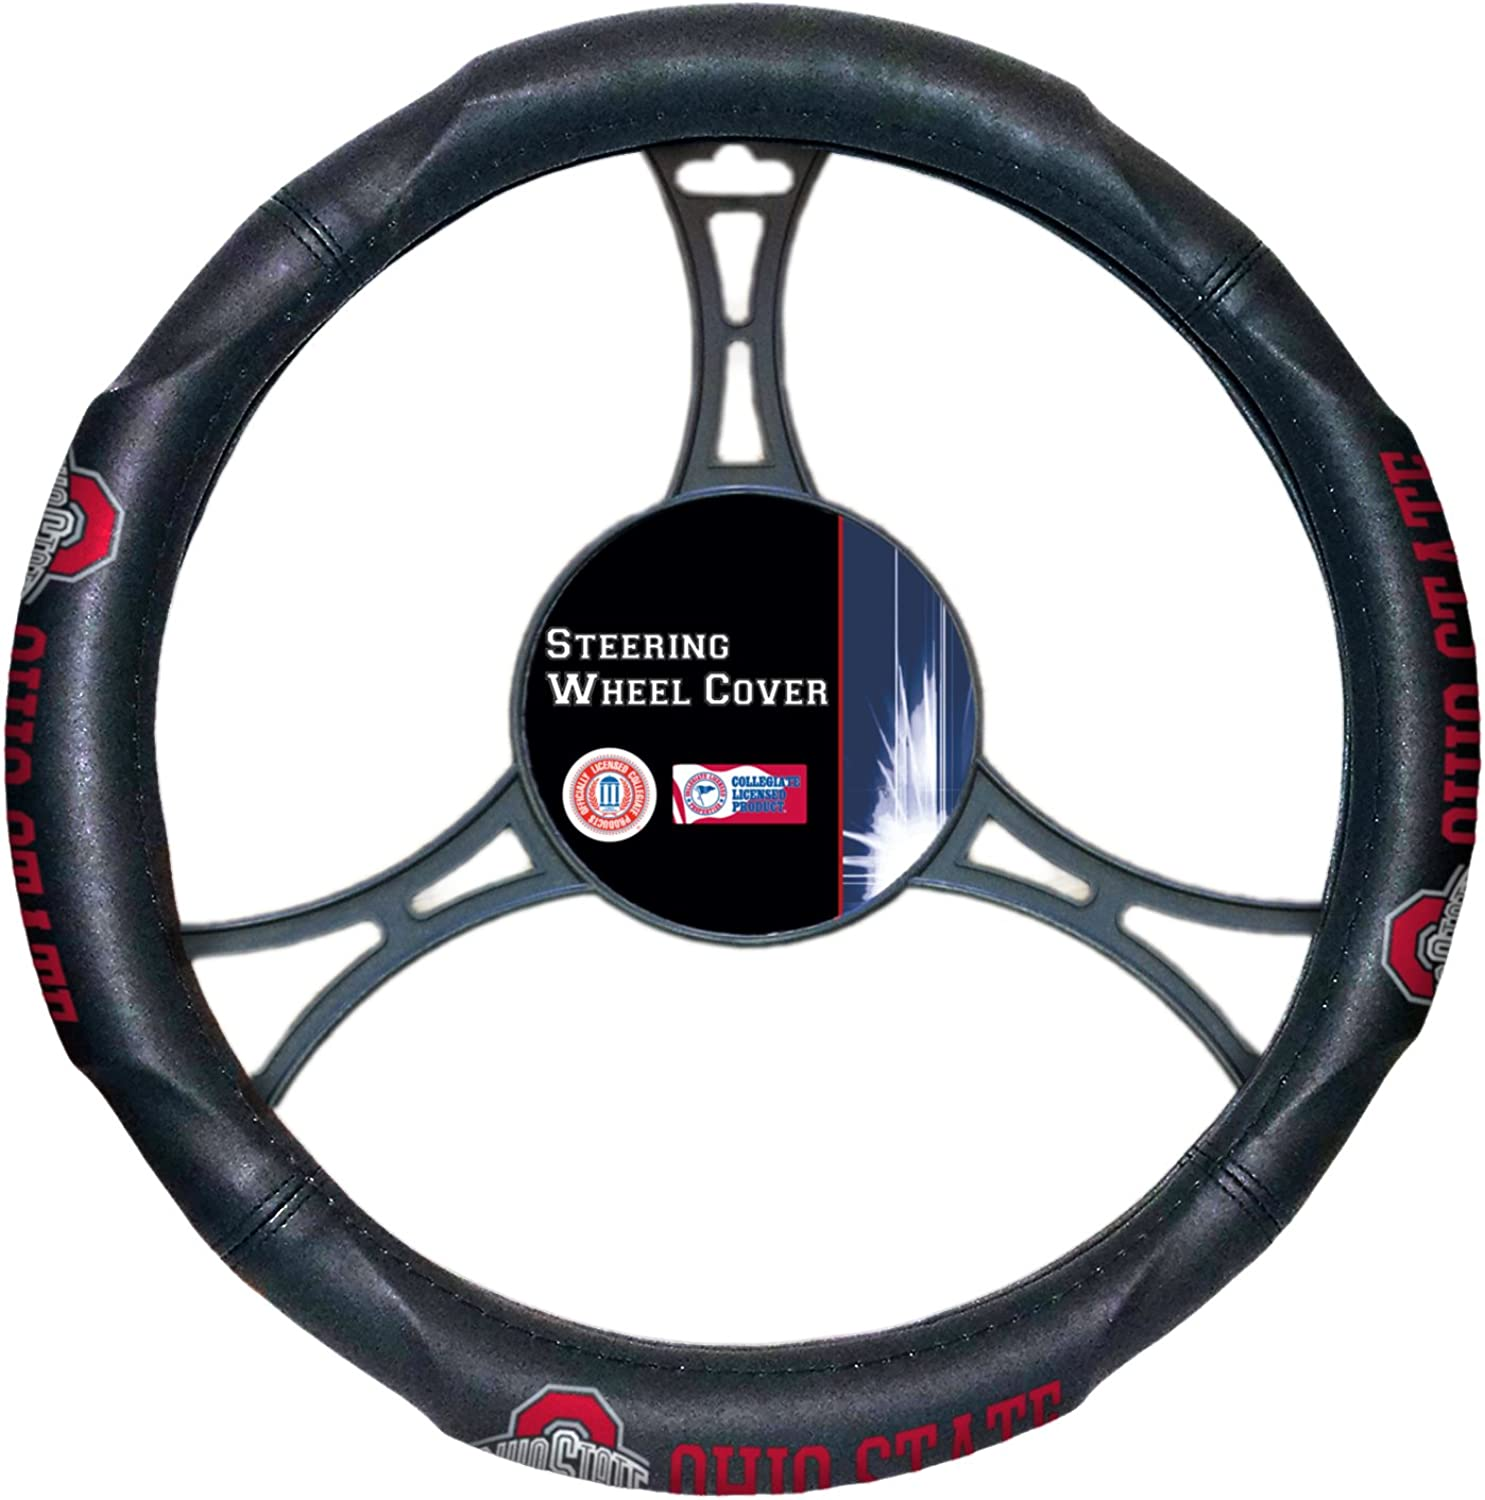 NCAA Wheel Cover, Unisex, NCAA Ohio State Buckeyes Licensed Steering Wheel Cover, One Size, Scarlet, 1COL605000007RET, Scarlet, One Size